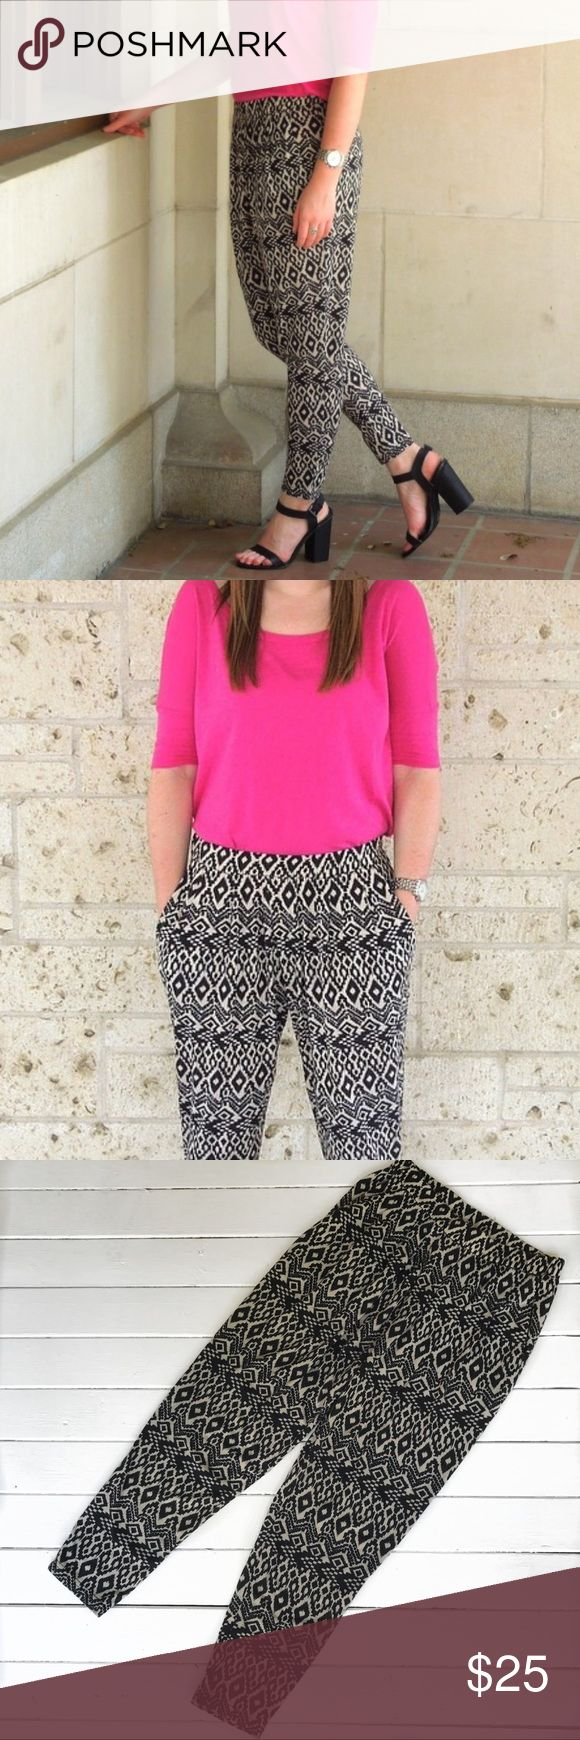 Anthropologie Printed Pants Soft fabric with an Aztec print. Perfect for any season! Anthropologie Pants Track Pants & Joggers